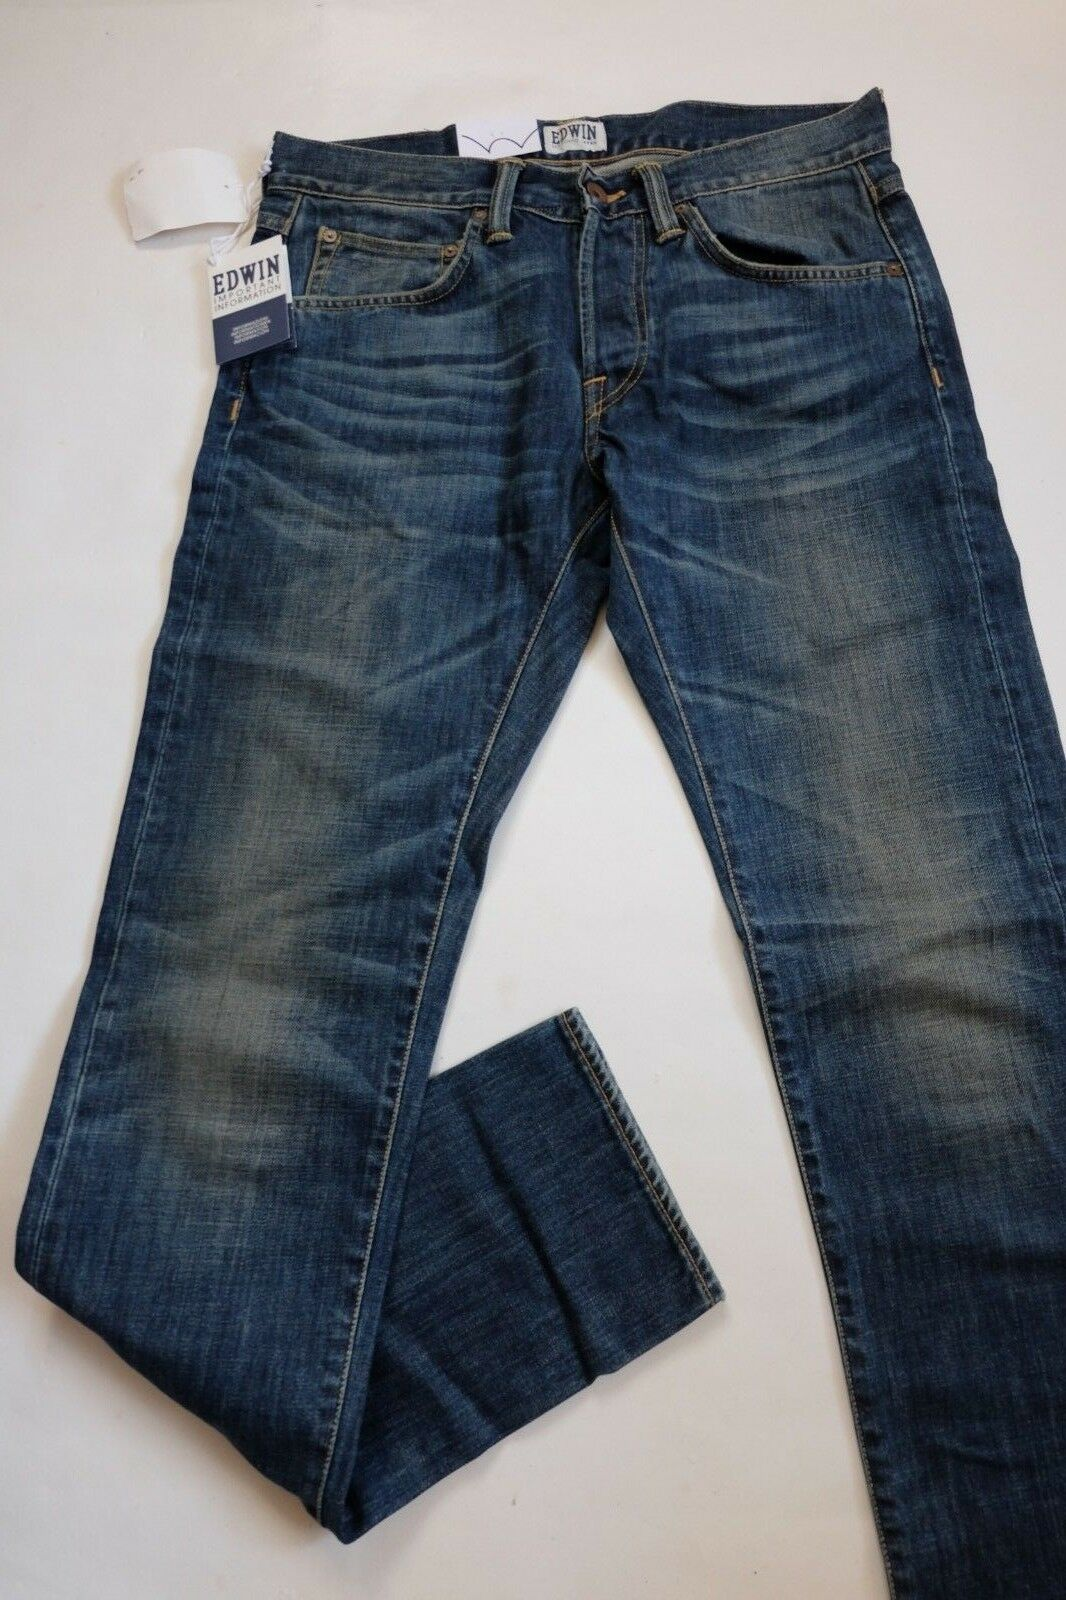 JEANS EDWIN MAN ED 55 RELAXED TAPERED (dark bluee -rise used) W30 L34 VAL